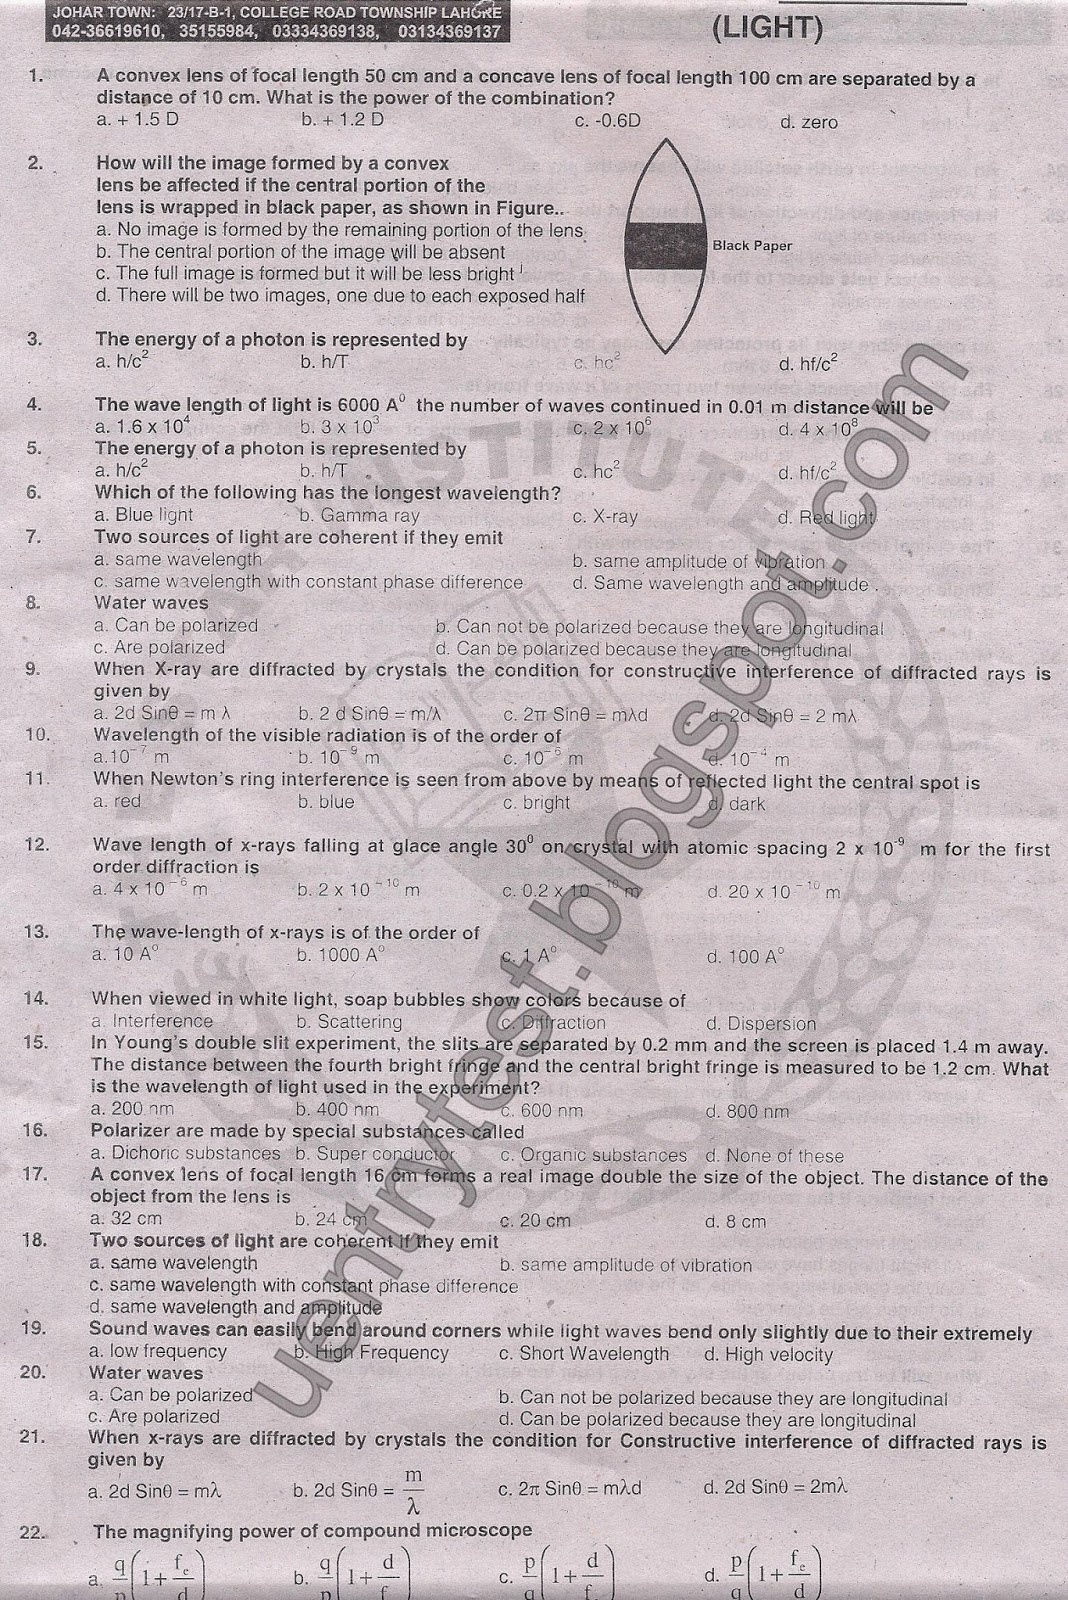 The Star Institute Entry Test Physics (Unit 4) [Light